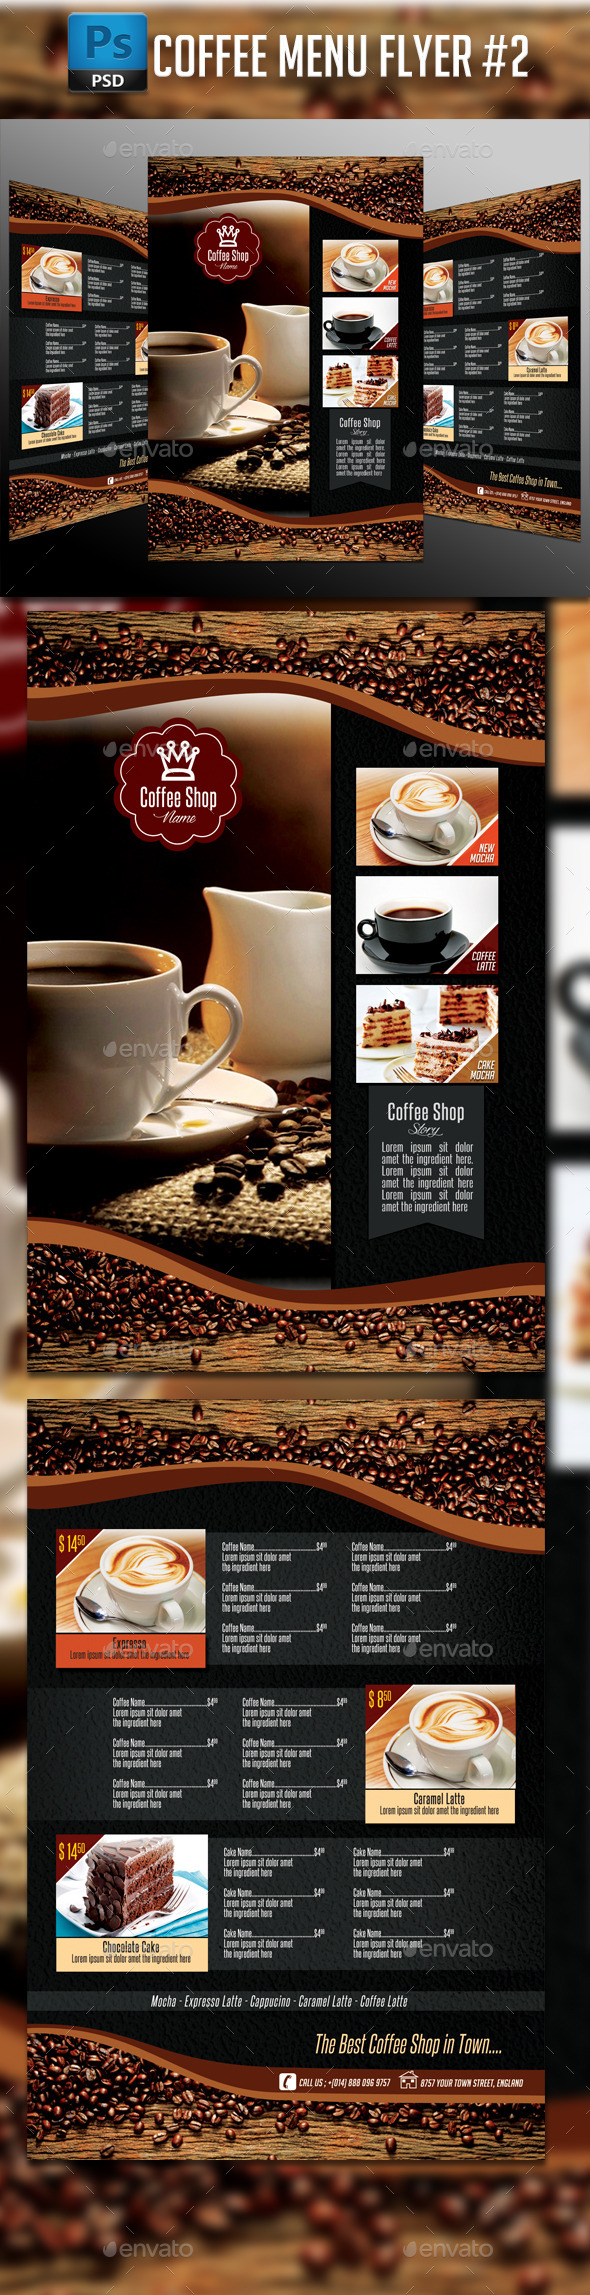 GraphicRiver Coffee Menu Flyer #2 11035329